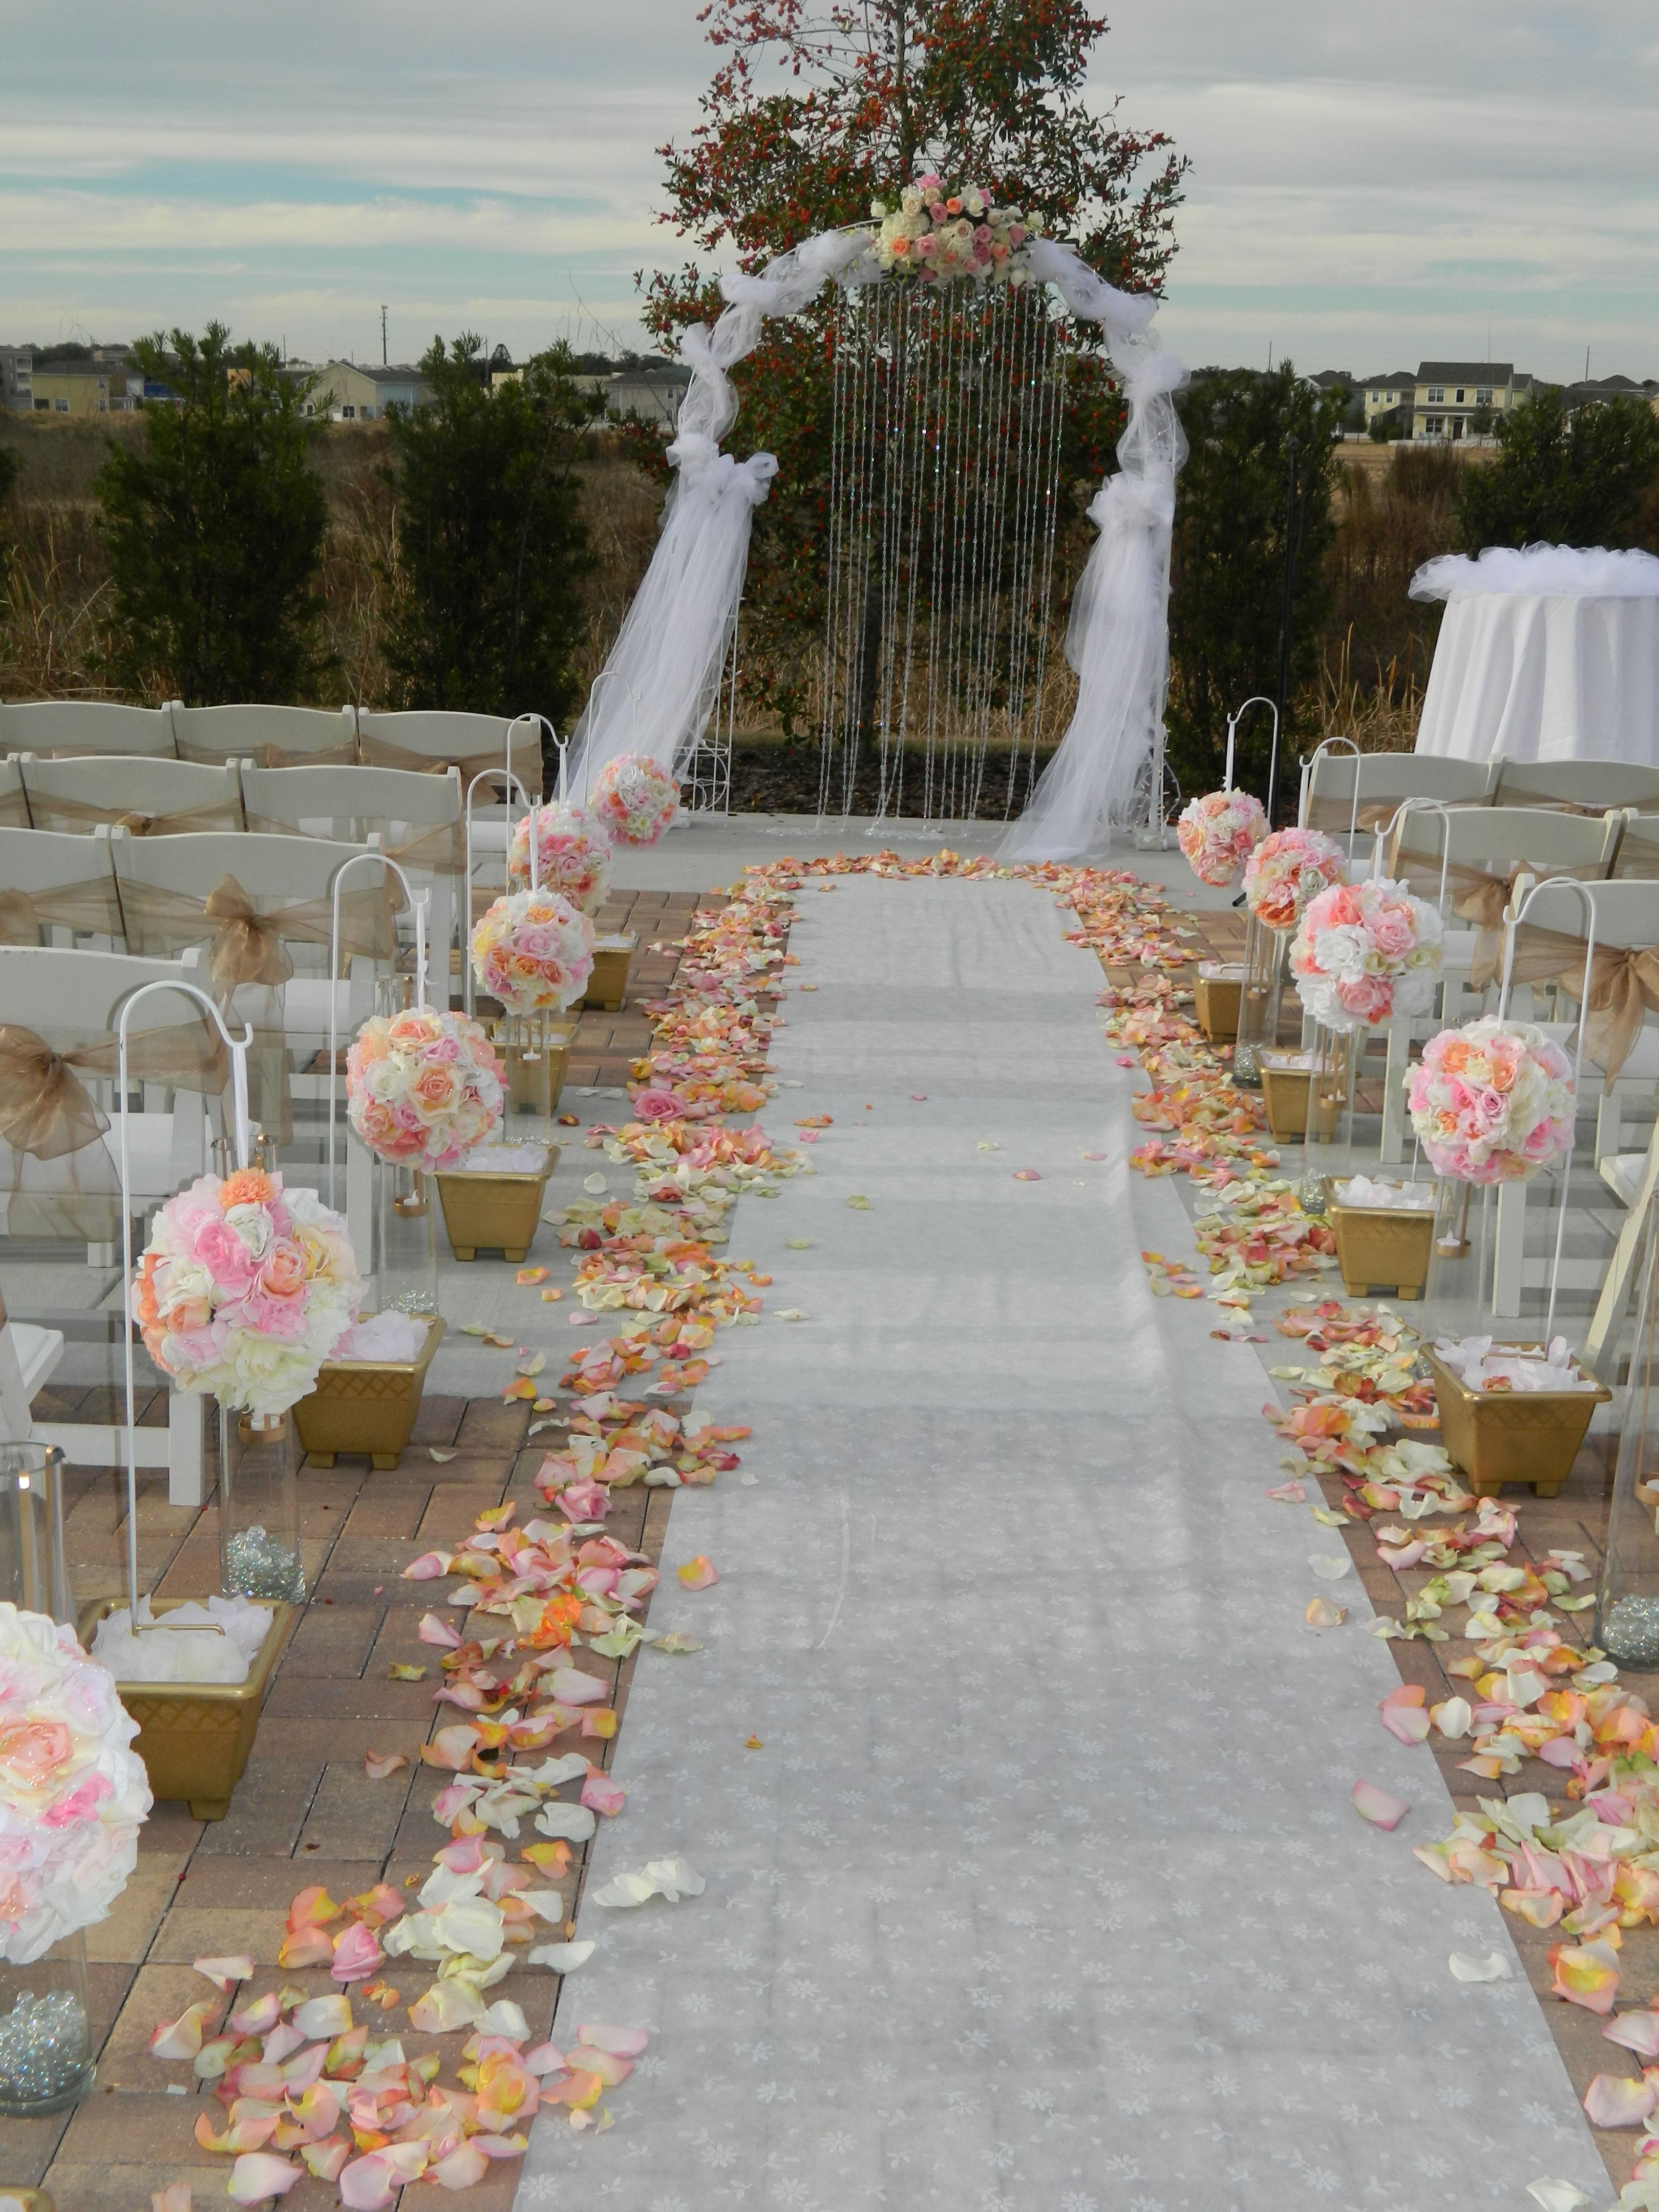 69 outdoor wedding aisle decor ideas pinterest silver color outdoor wedding reception decor i could paint the sheperds hooks a silver color junglespirit Choice Image